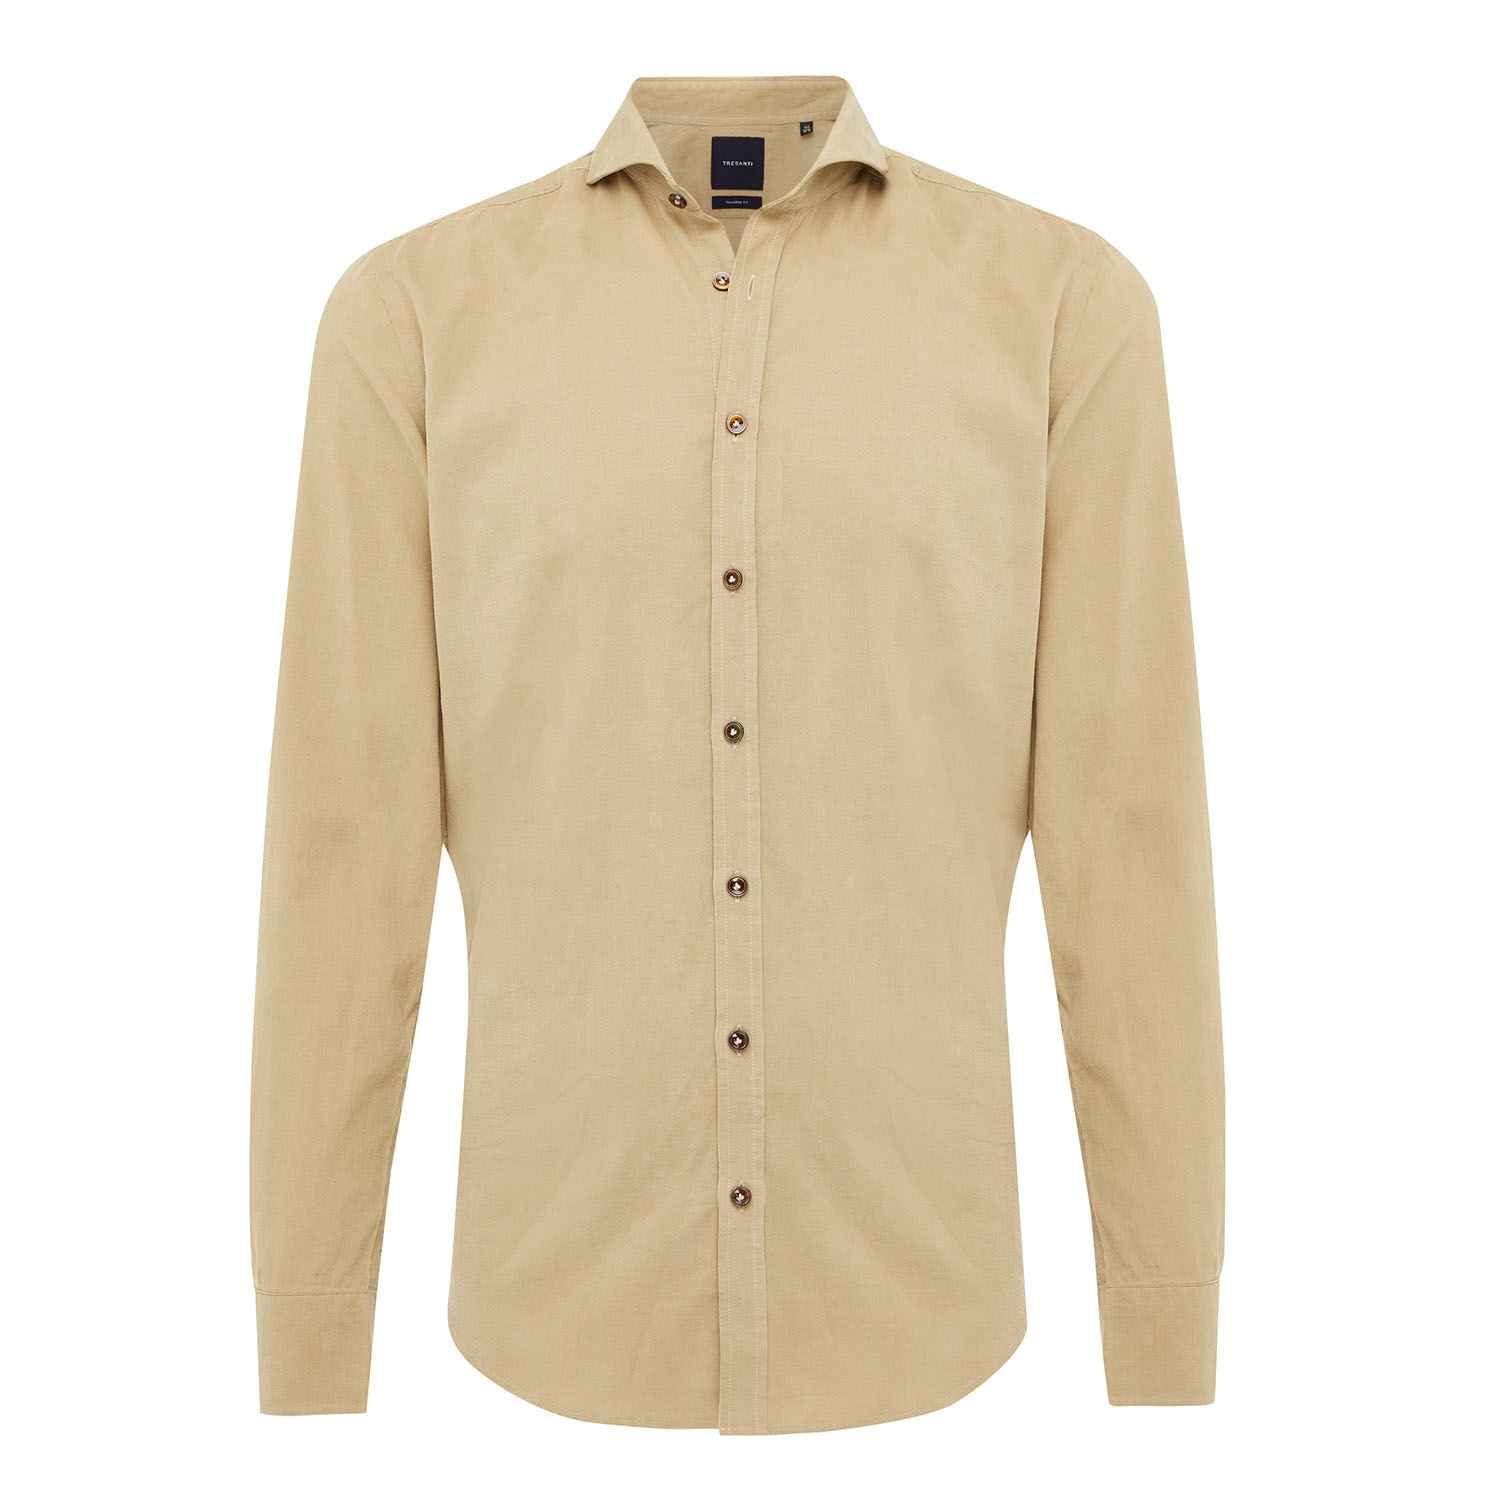 EMRIC   Shirt with button closure and baby cord in beige